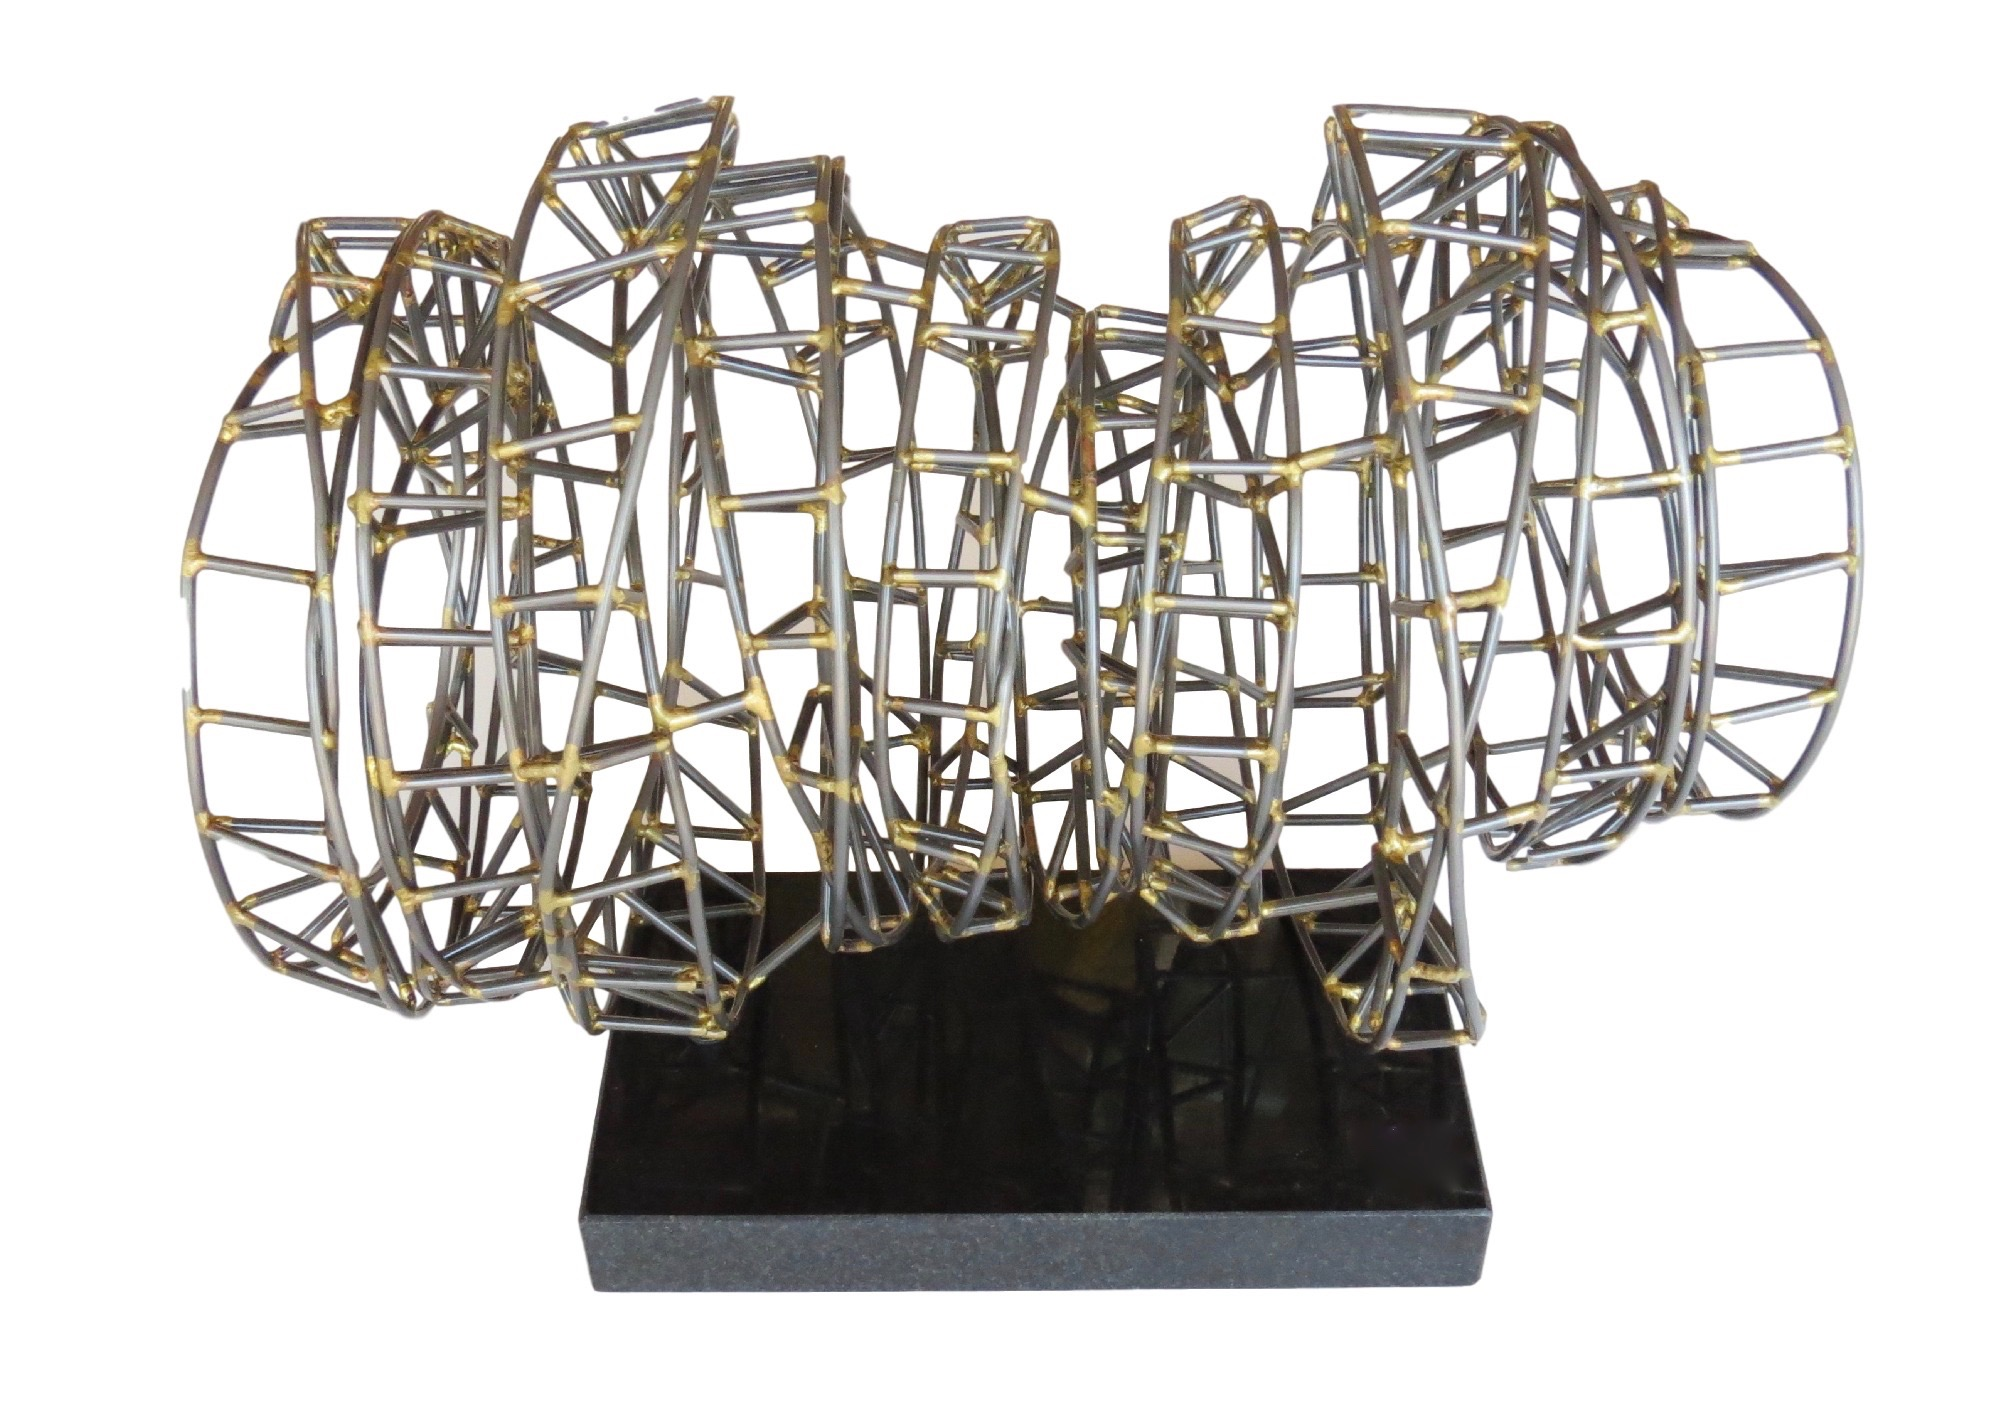 Iron/Brass/Granite Helix Sculpture  14x9x10h  GV7.90581